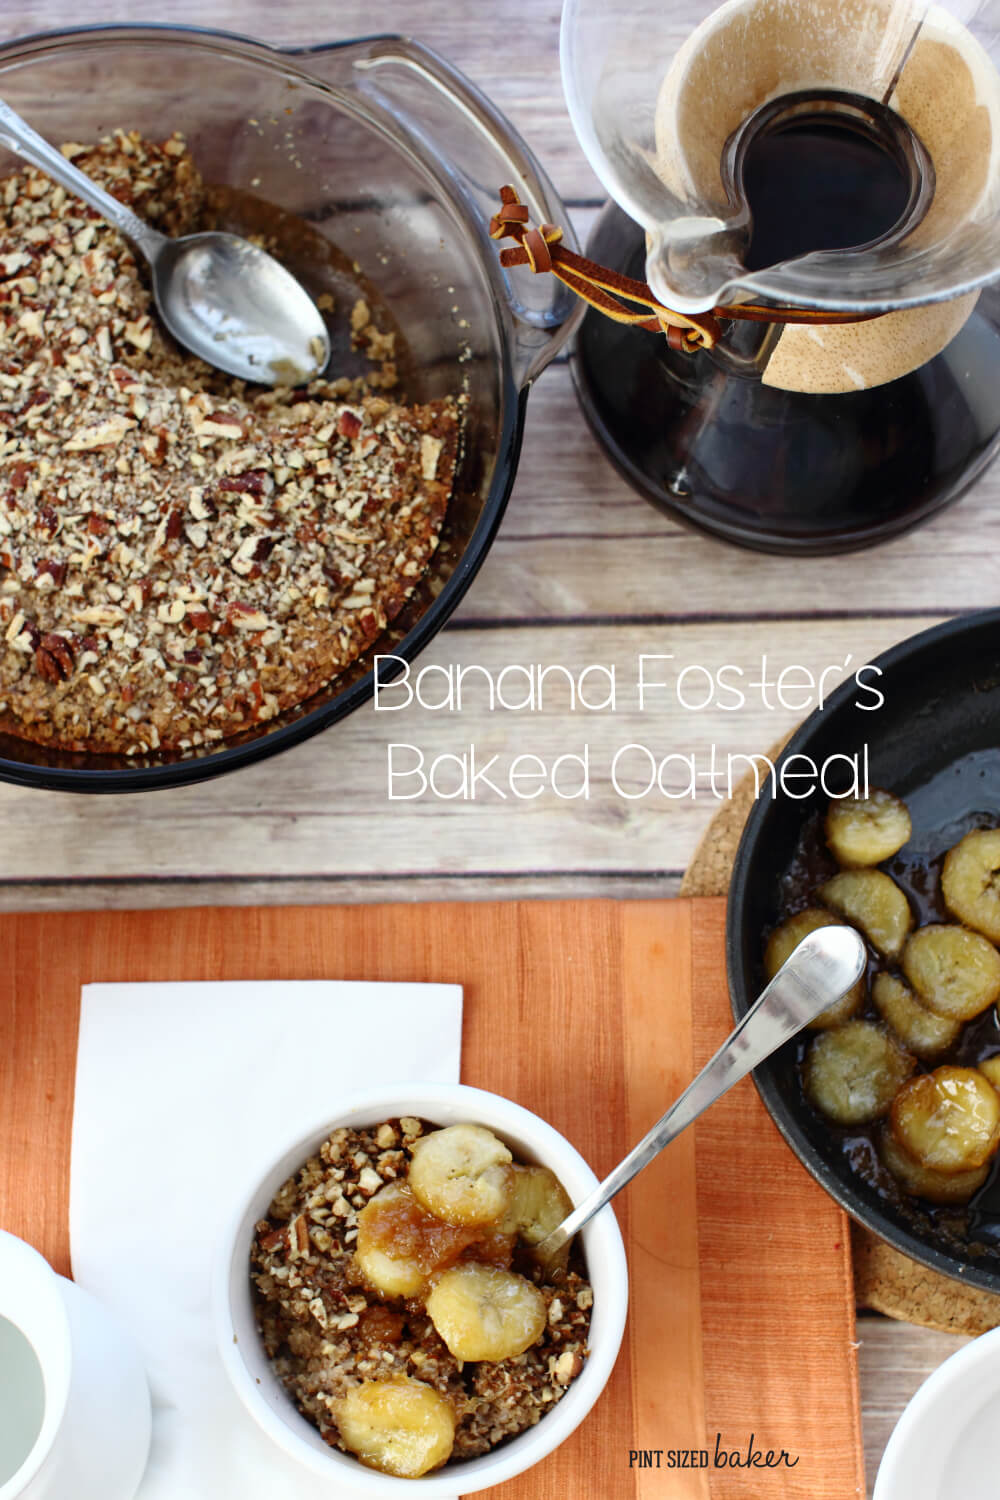 Mornings were made for this warm and filling Banana Fosters Baked Oatmeal.